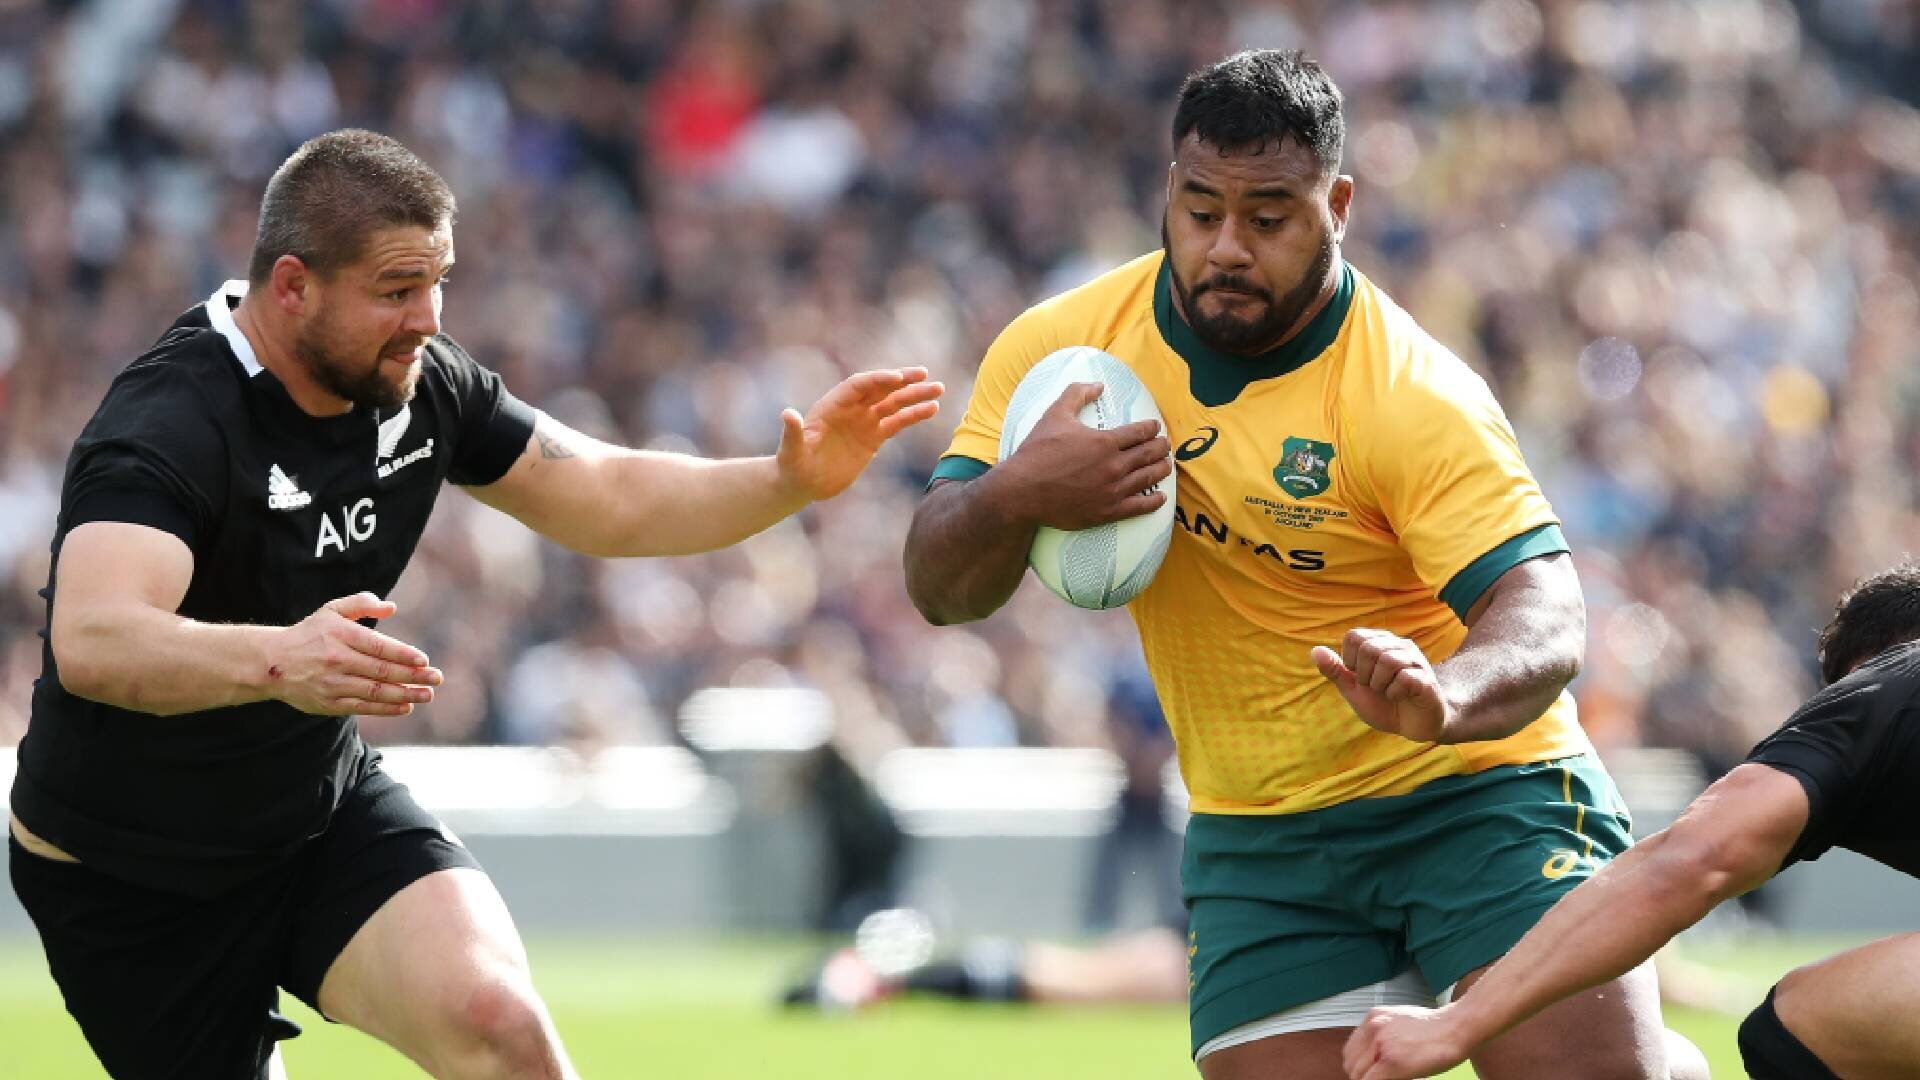 'Move on': Wallabies stars respond to 'soft Aussies' claim by New Zealand media ahead of All Blacks clash